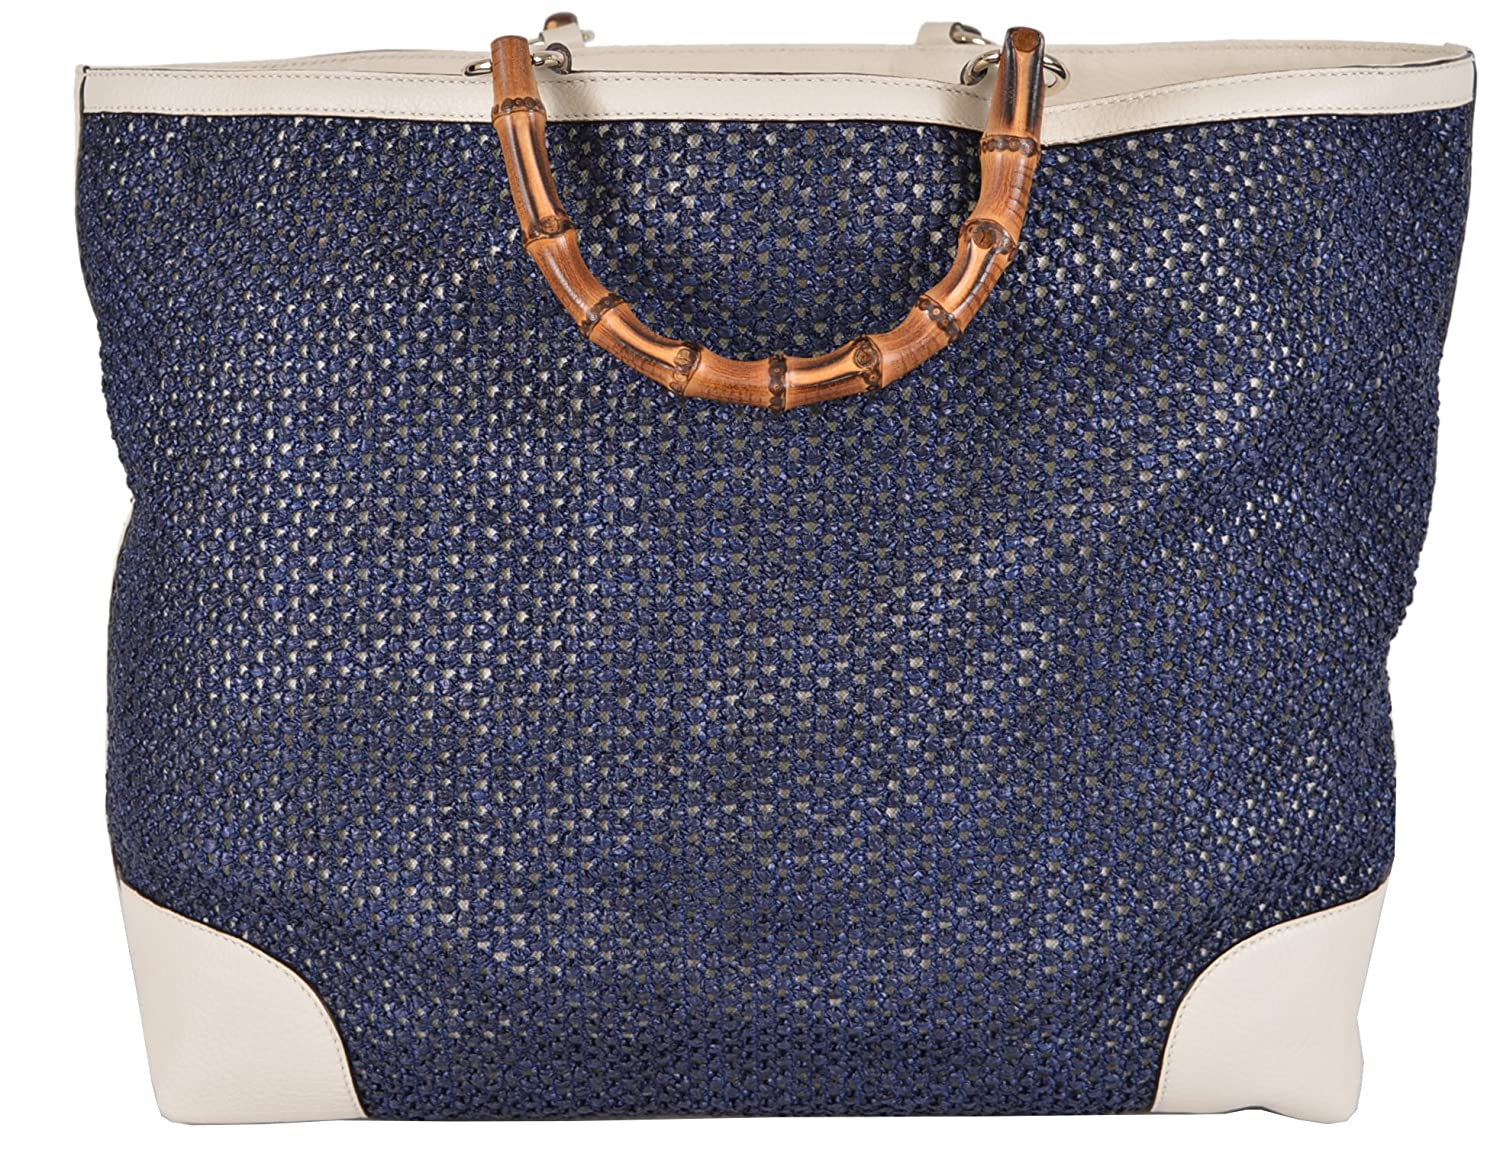 89d292a37 Amazon.com: Gucci Women's Large Blue Straw Leather Bamboo Handle Handbag  Tote: Shoes